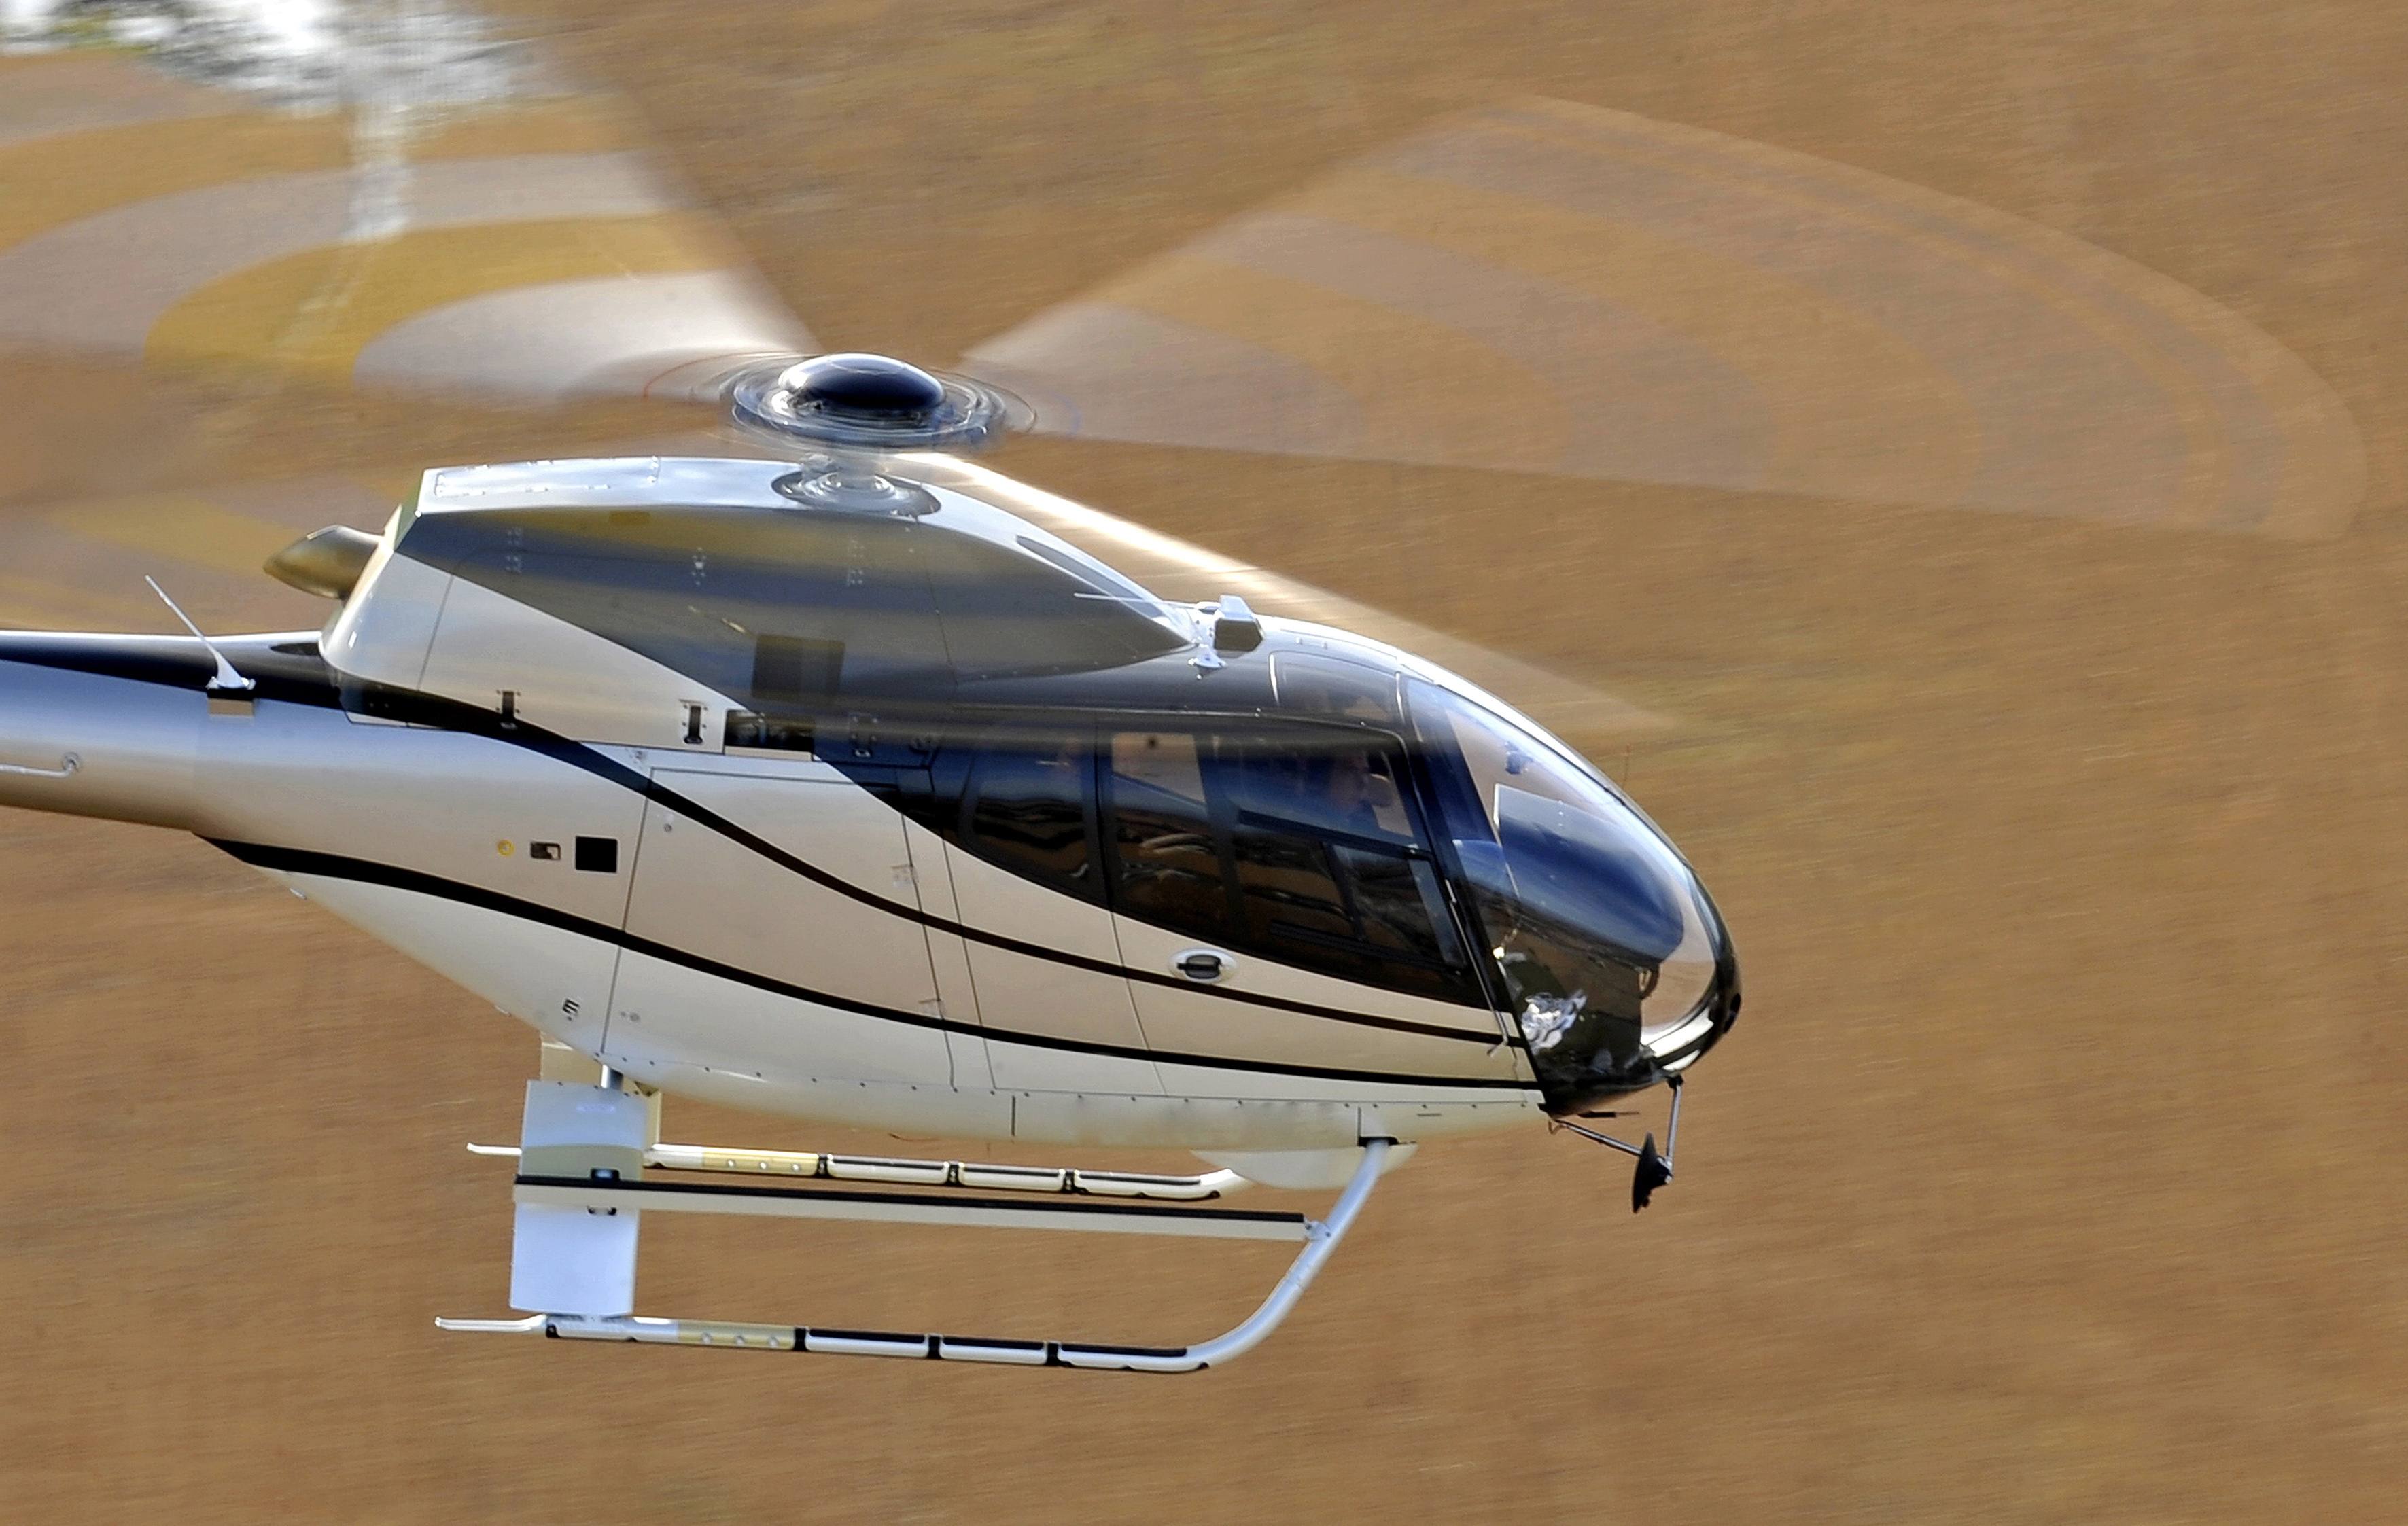 Airplane Wallpaper Iphone X Eurocopter Ec120 Full Hd Wallpaper And Background Image